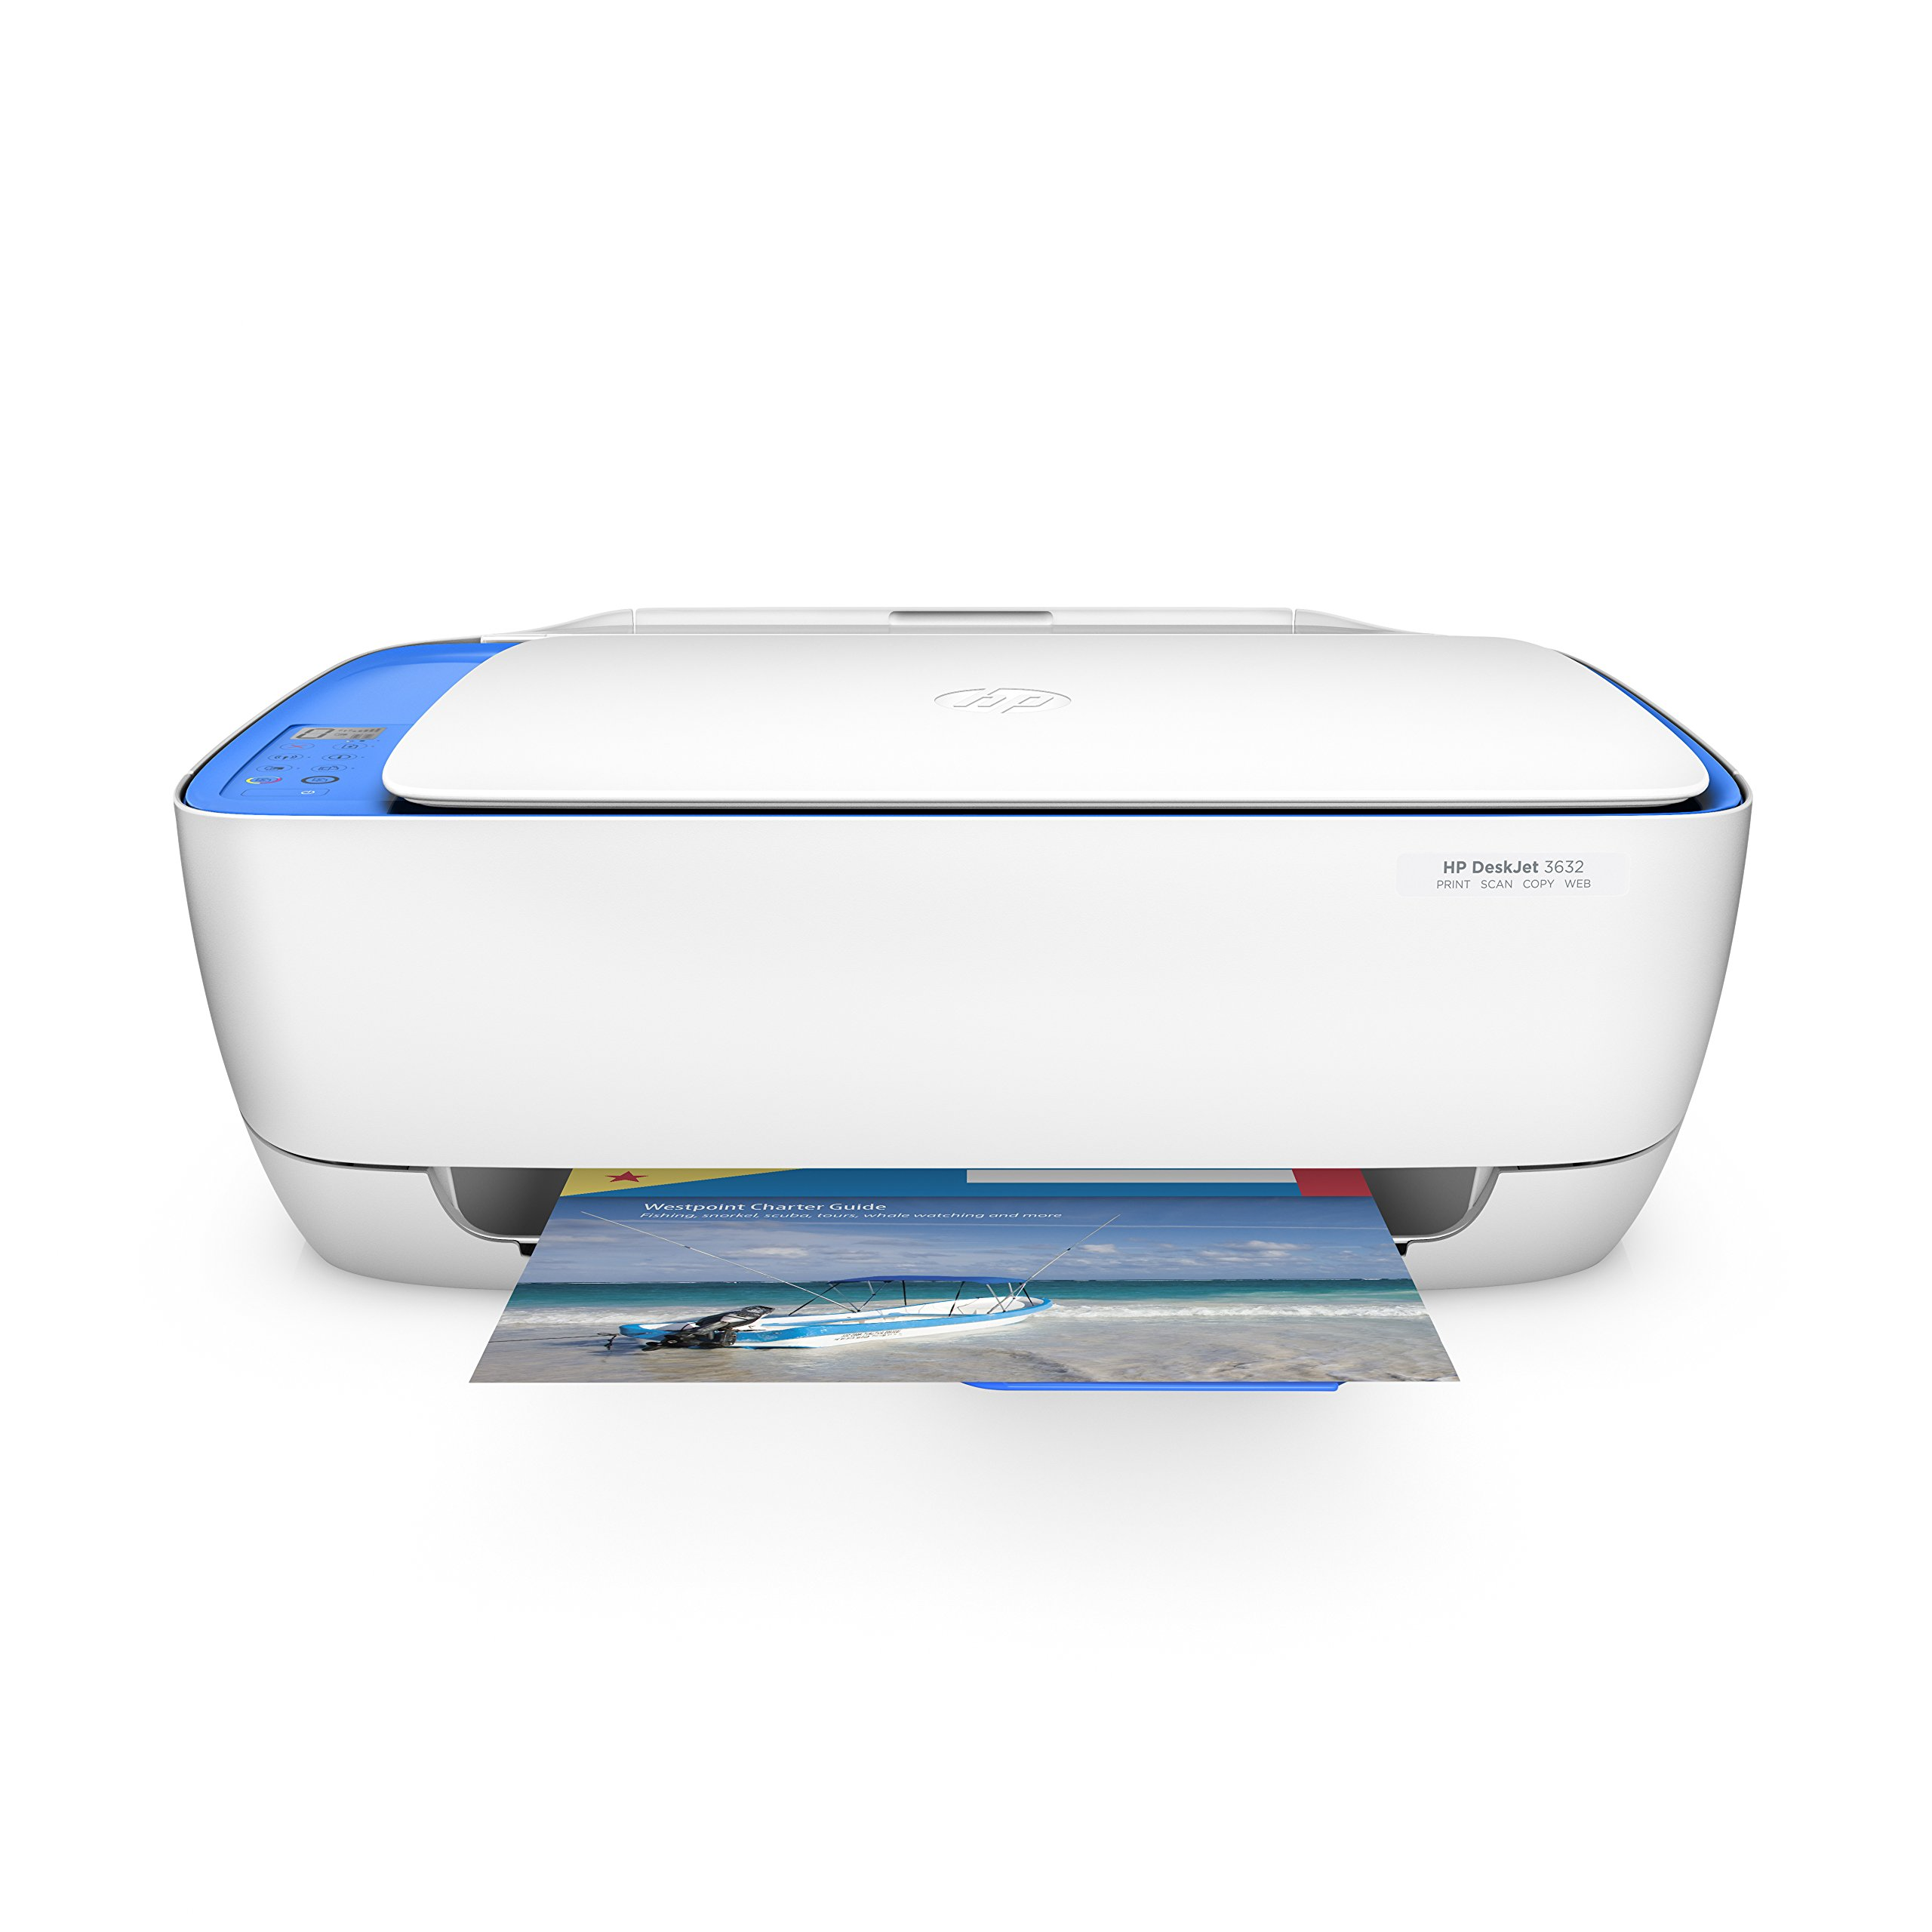 HP DeskJet 3632 All-in-One Printer